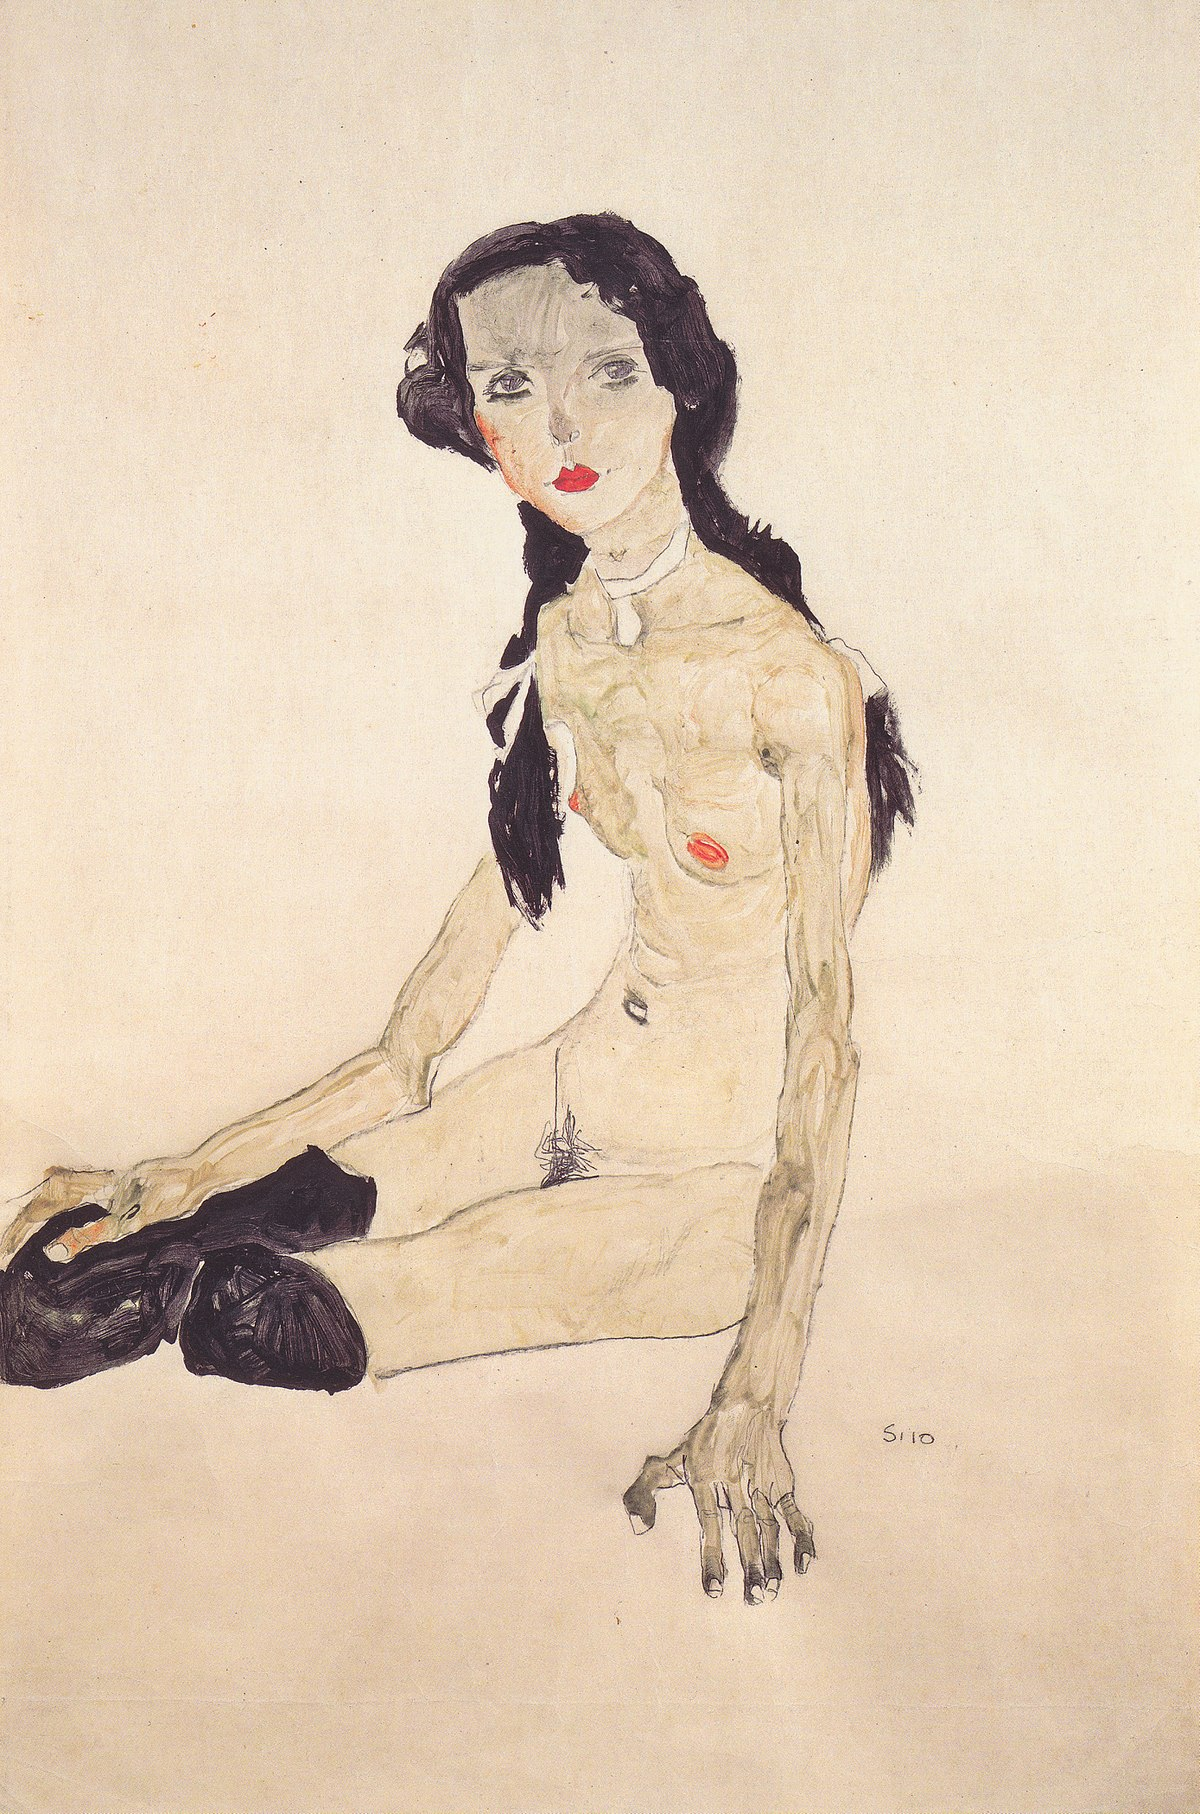 http://upload.wikimedia.org/wikipedia/commons/thumb/4/43/Egon_Schiele_-_Sitzendes_M%C3%A4dchen_mit_Pferdeschwanz_-_1910.jpeg/1200px-Egon_Schiele_-_Sitzendes_M%C3%A4dchen_mit_Pferdeschwanz_-_1910.jpeg